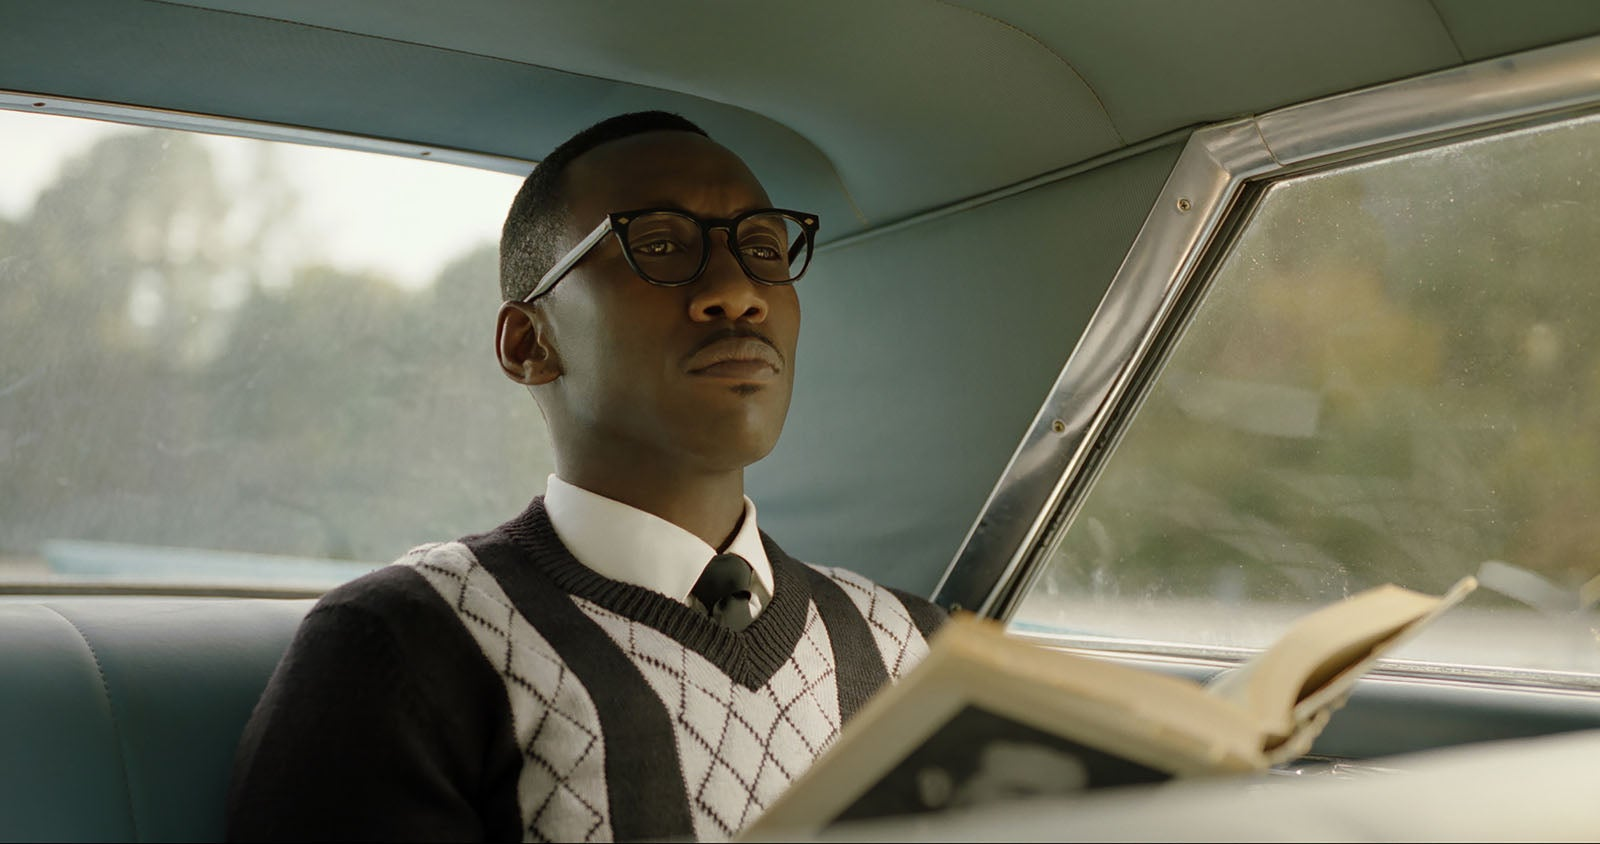 An unsmiling Mahershala Ali sits in the backseat of a car.